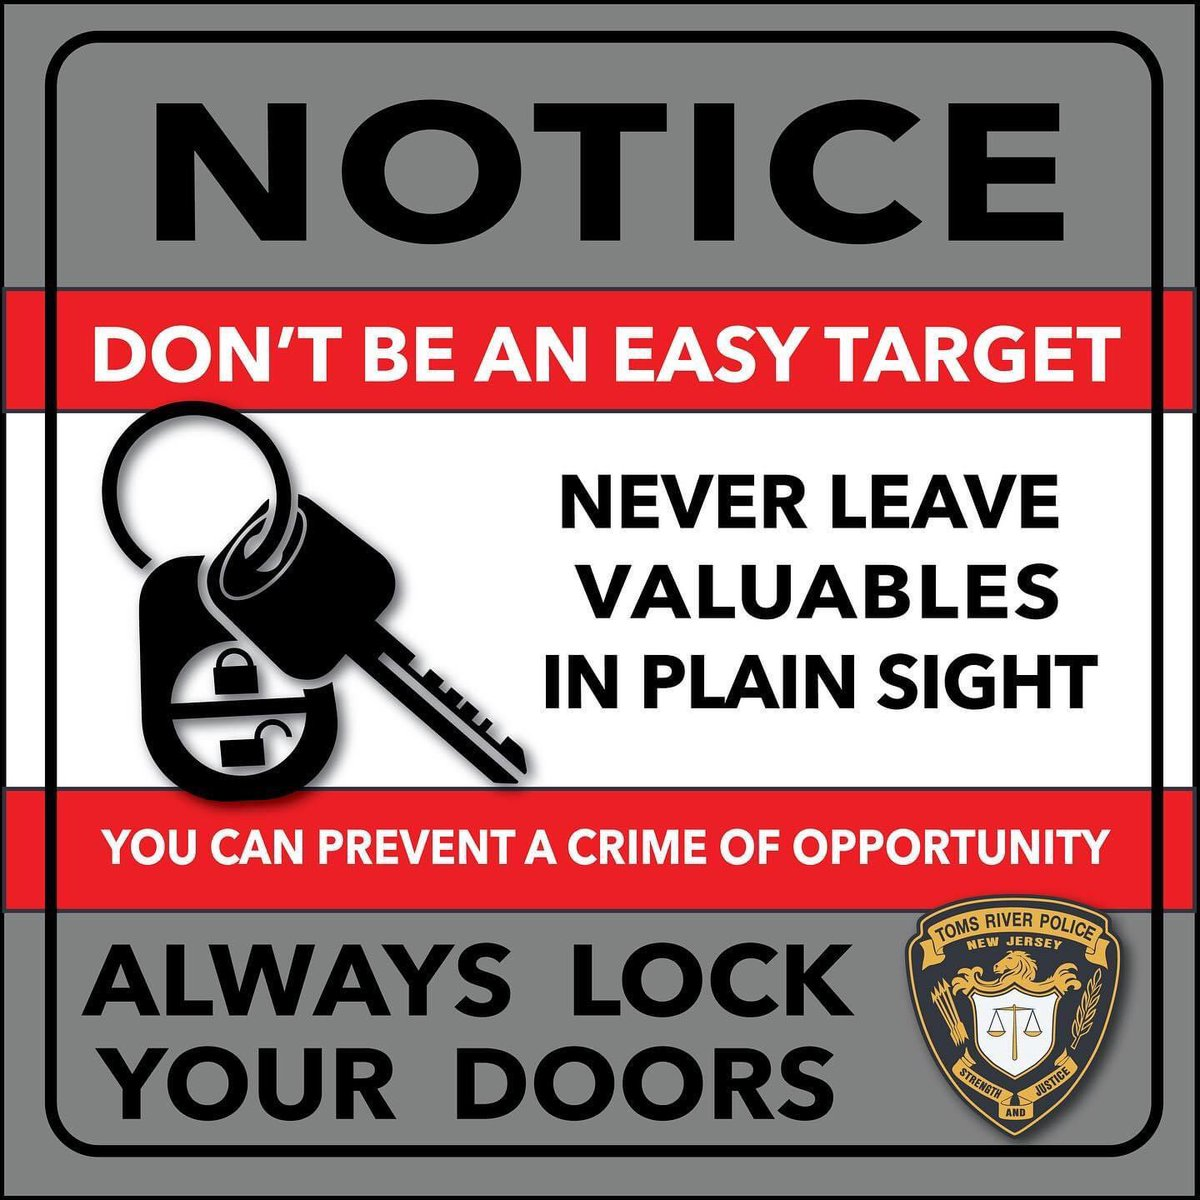 Friendly reminder - Criminals look for opportunities. Leaving your vehicles unlocked creates an easy target for them.  Please lock your car doors and do not leave valuables inside, especially in plain view.   Stay alert, stay safe!